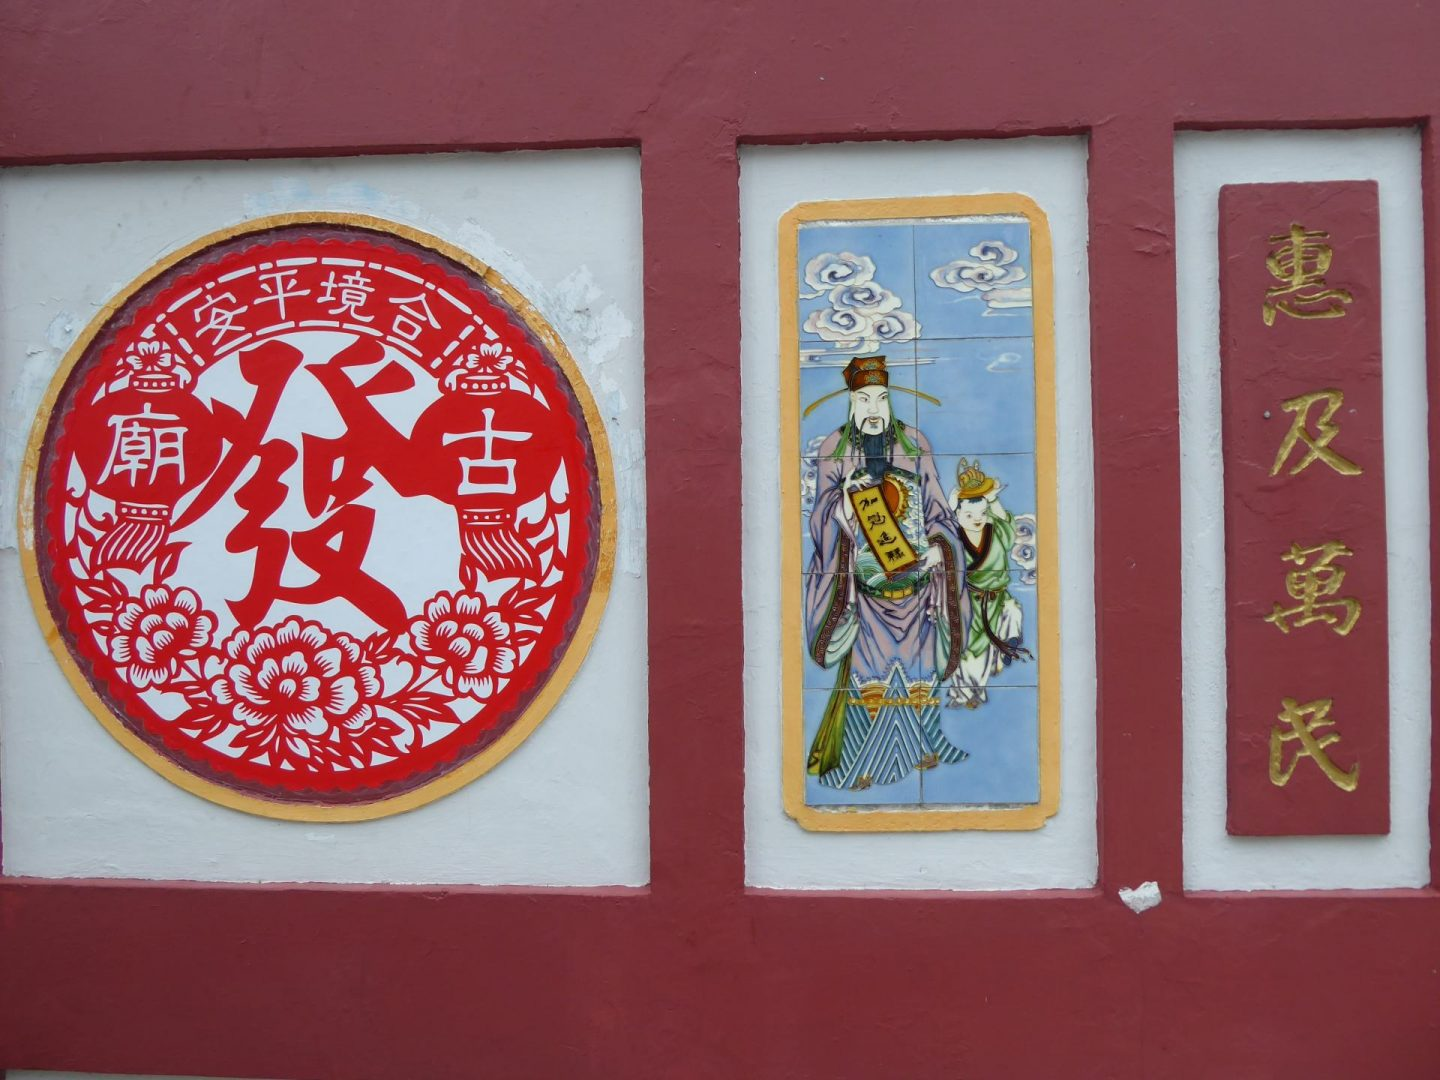 Artwork at the Old Chinese Temple in Johor Bahru